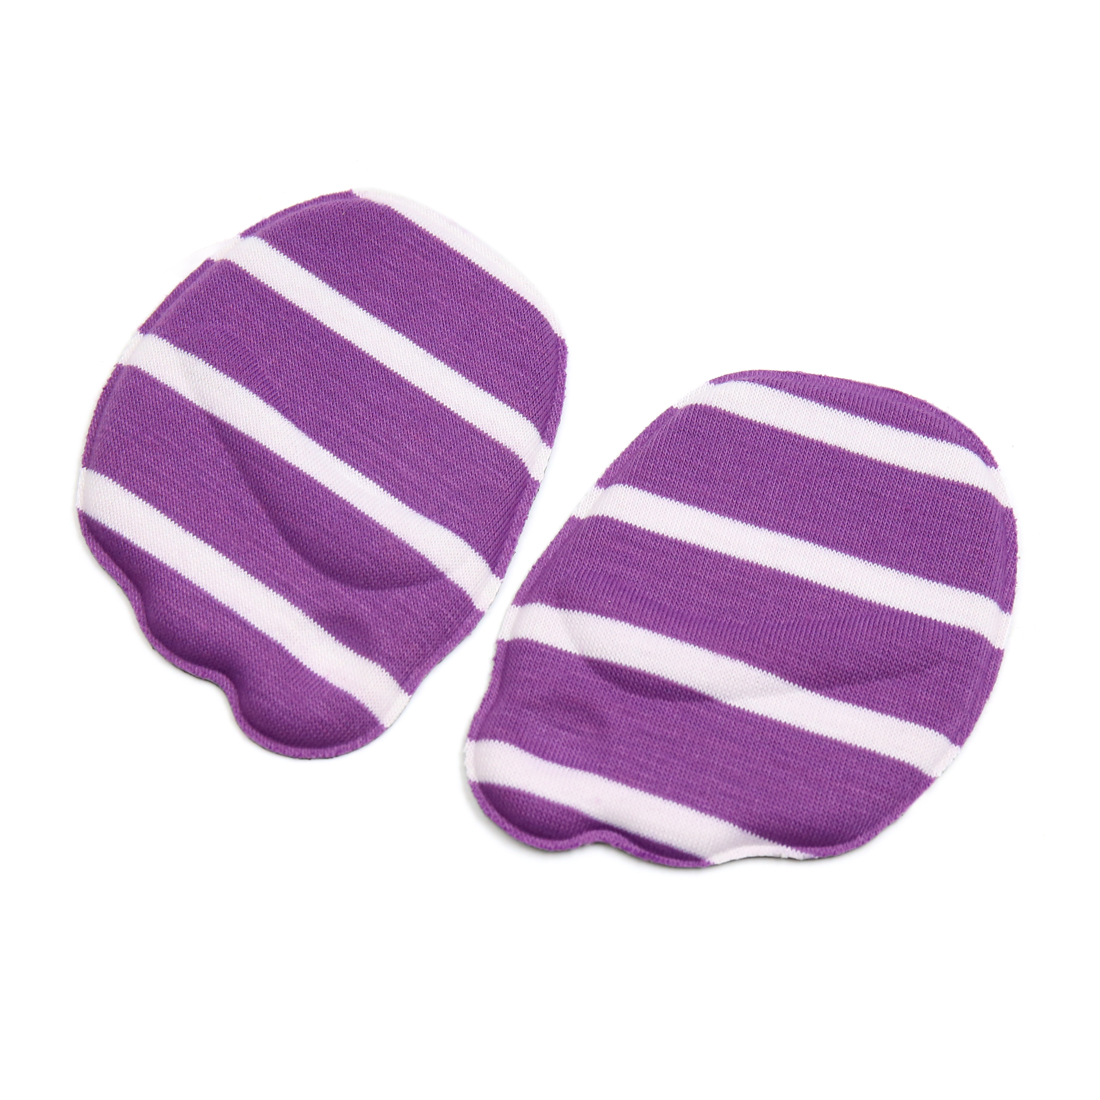 1 Pair Soft Sponge Ball of Foot Forefoot Metatarsal Pad High Heel Half Insole Cushion